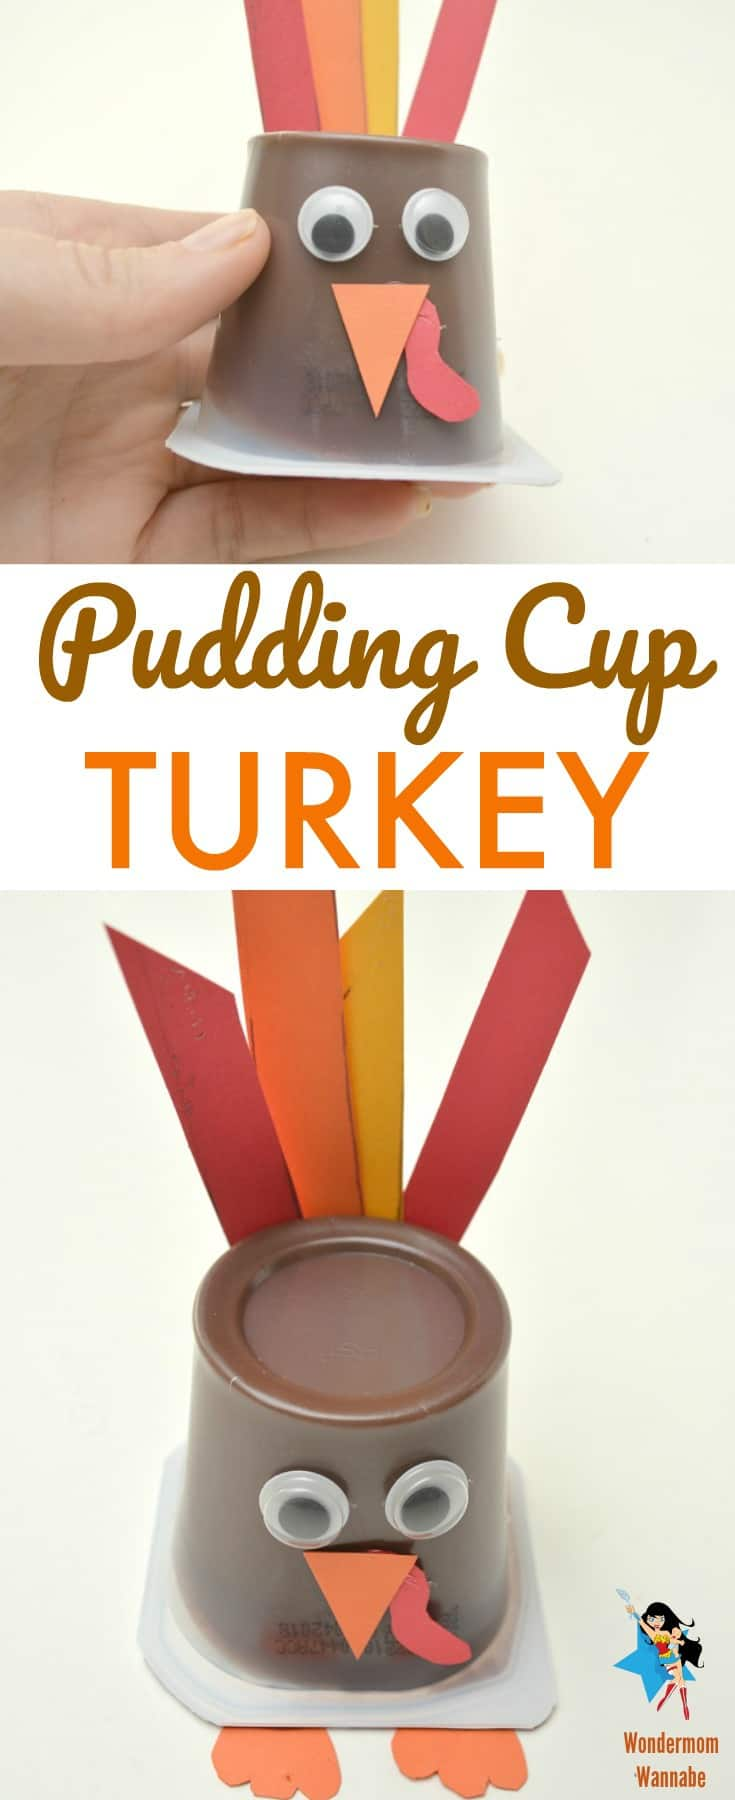 a collage of an upside down pudding cup decorated with googly eyes, an orange paper beak with a red waddle, orange paper feet and red, orange and yellow paper feathers to look like a turkey, all on a white background with title text reading Pudding Cup Turkey